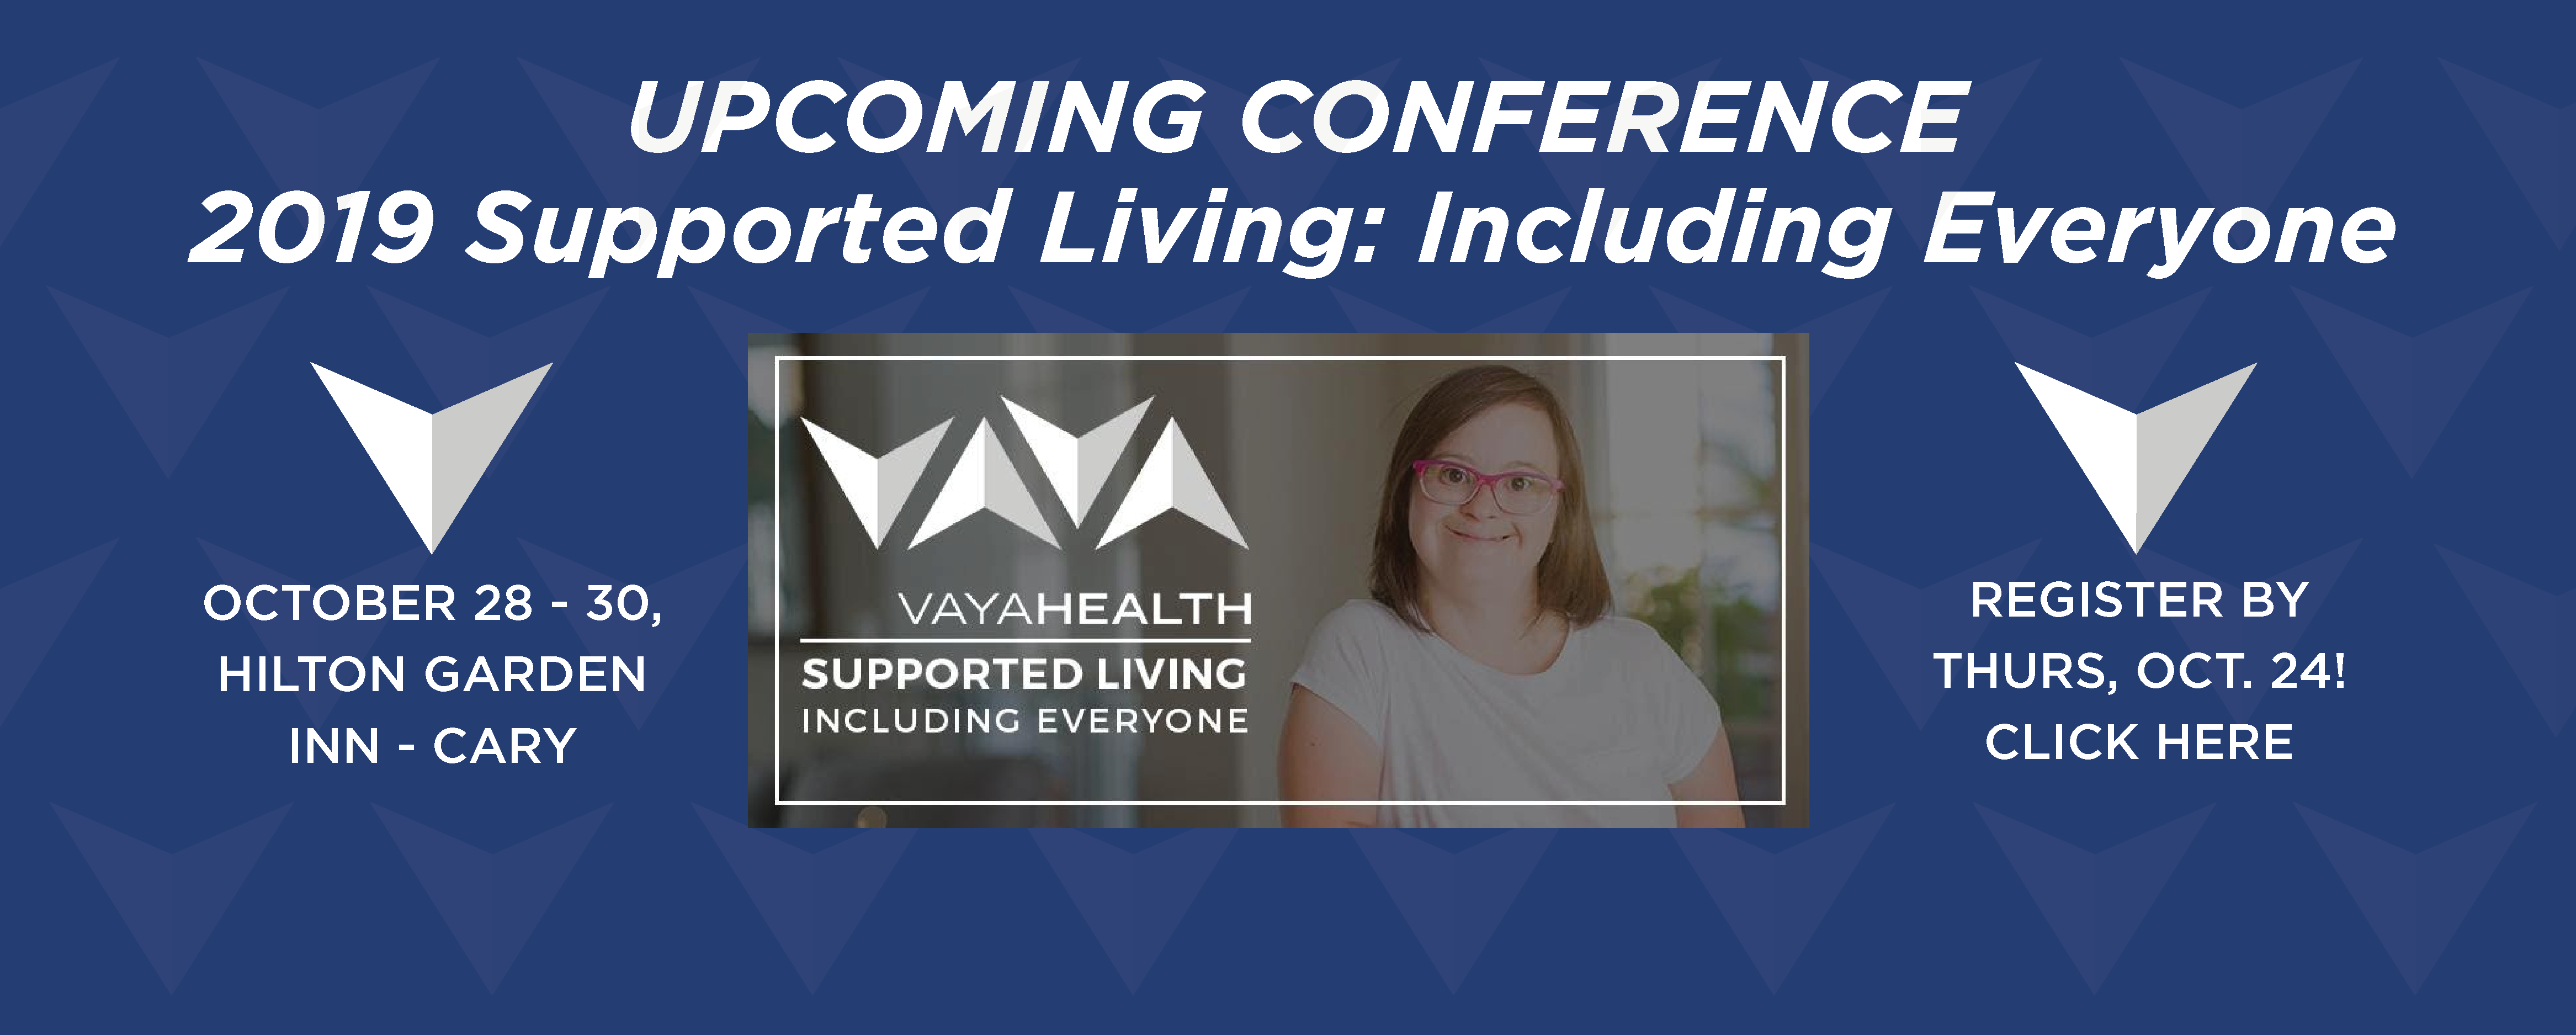 Register for Upcoming Conference 2019 Supported Living: Including Everyone, October 28-30, 2019, Cary NC, Deadline to Register Thursday Oct 24